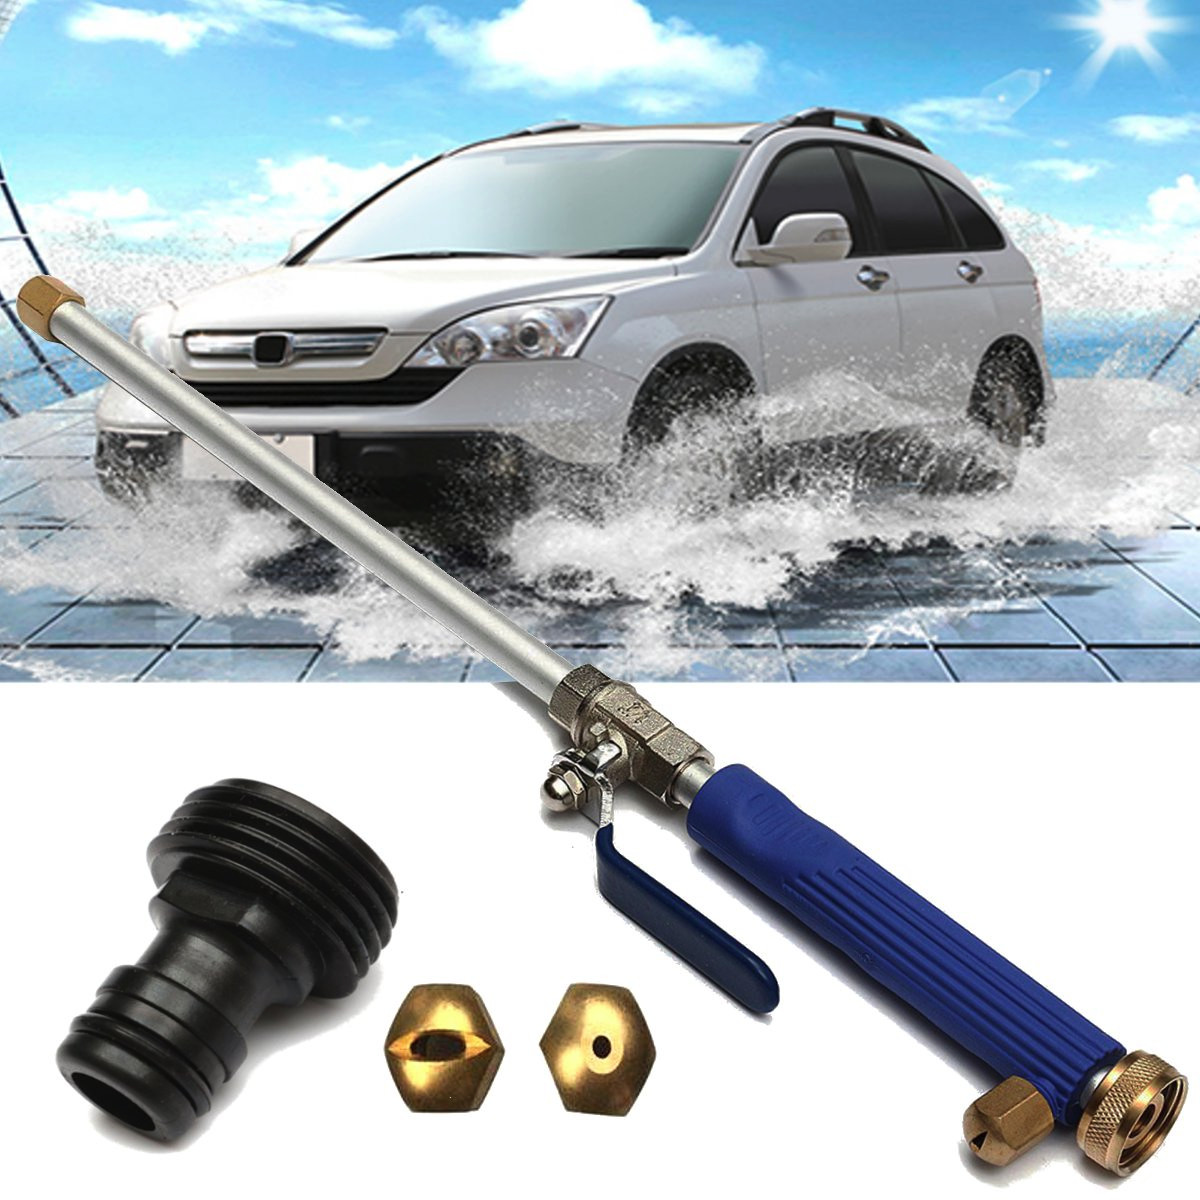 Spray-Nozzle Hose-Wand-Attachment Water-Gun Power-Car-Washer High-Pressure 18-Aluminium